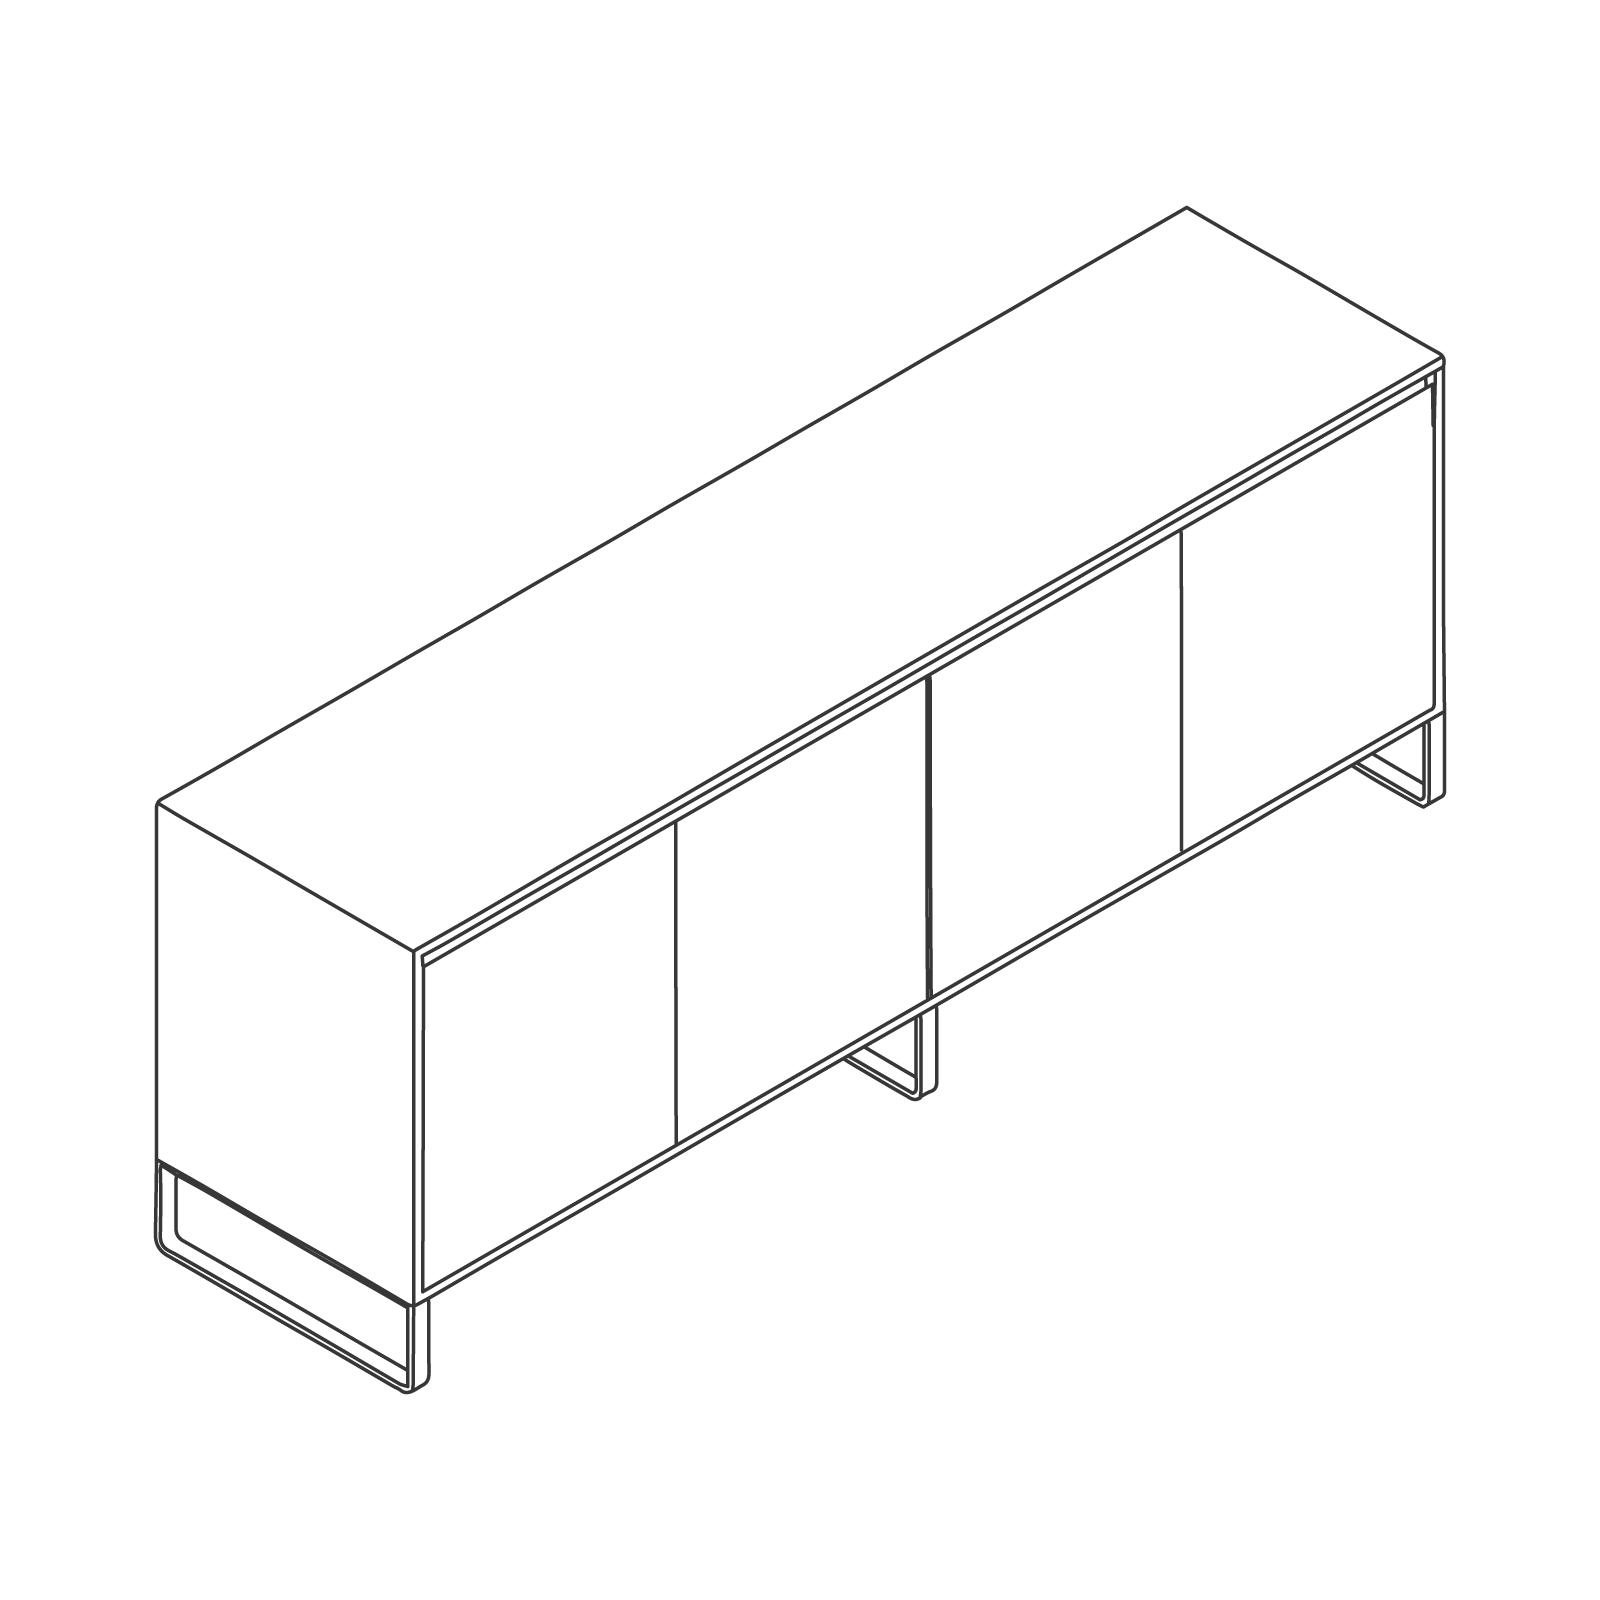 A line drawing of Sideboard Storage–4 Door.